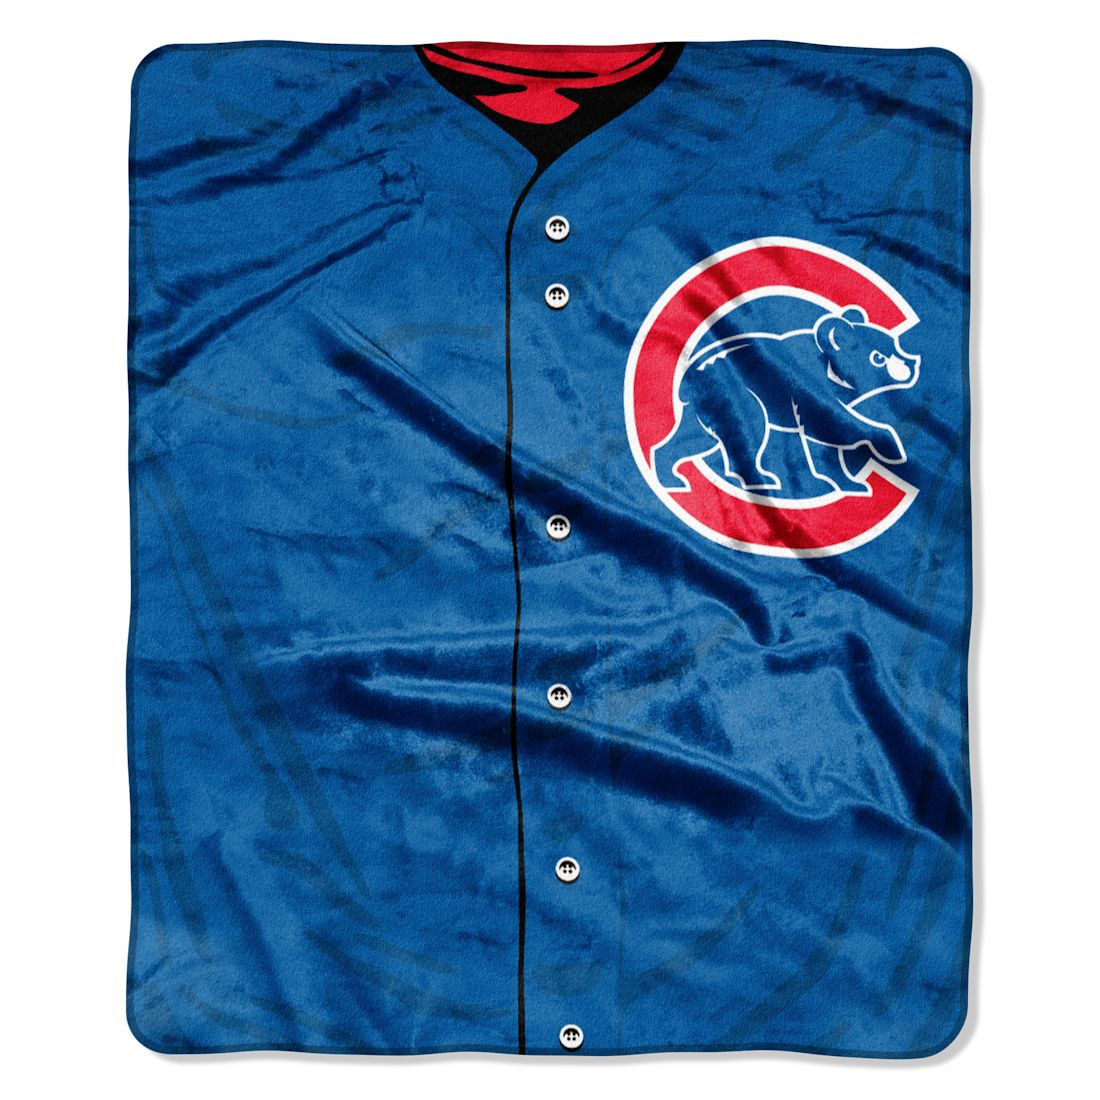 "Chicago Cubs 50""x60"" Royal Plush Raschel Throw Blanket - Jer"